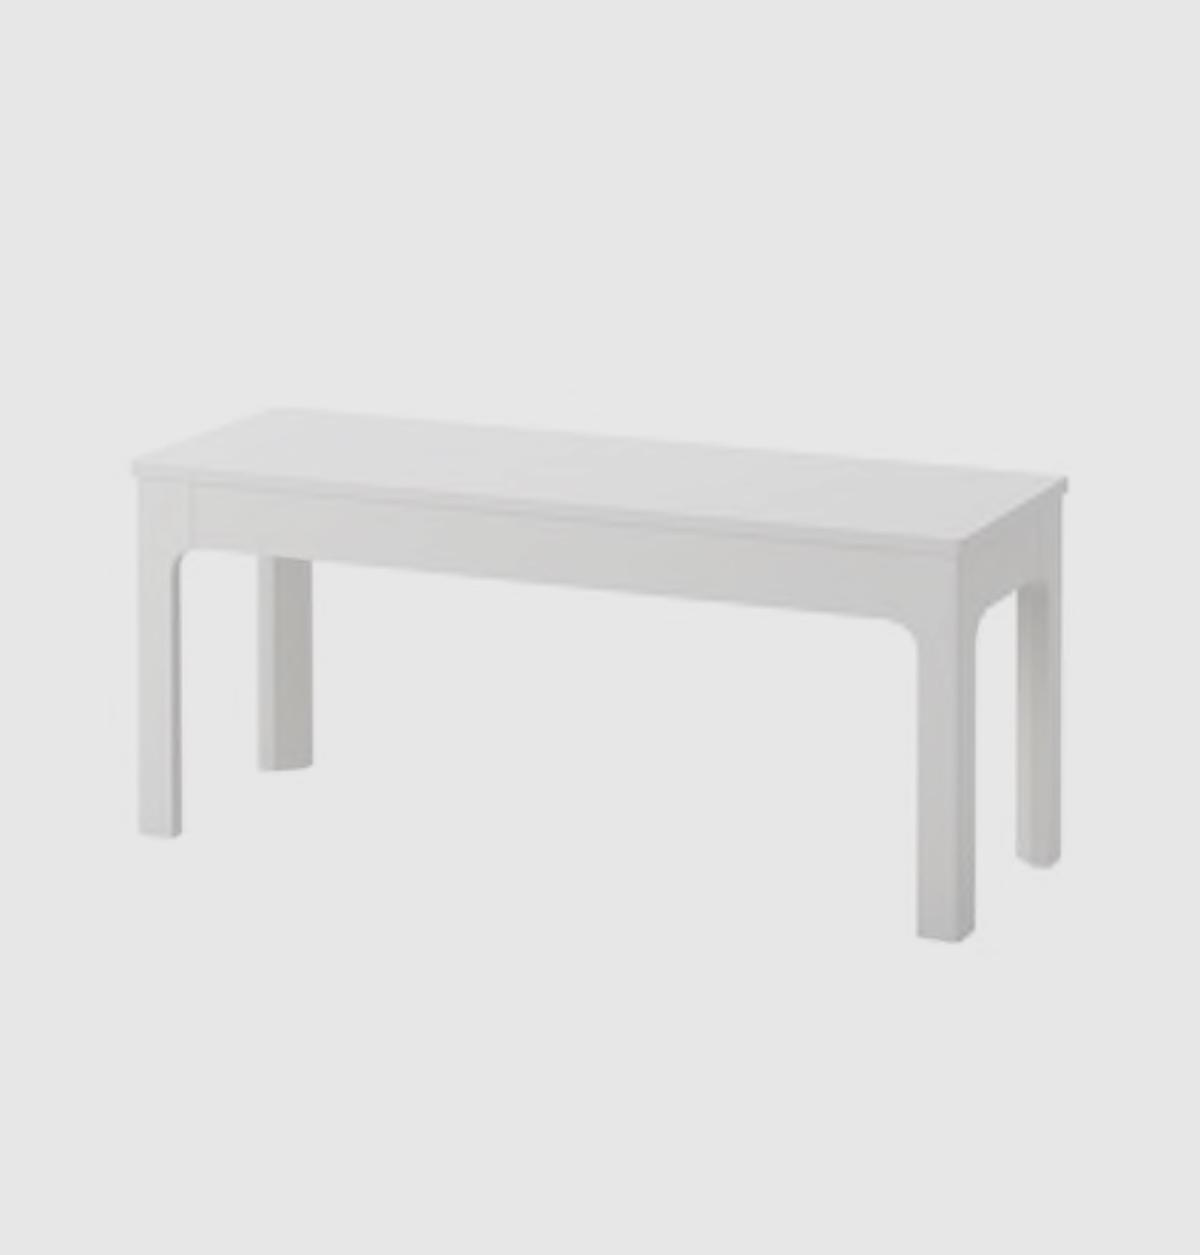 Stupendous Ikea Dining Table Set In Bd5 Bradford For 90 00 For Sale Ocoug Best Dining Table And Chair Ideas Images Ocougorg